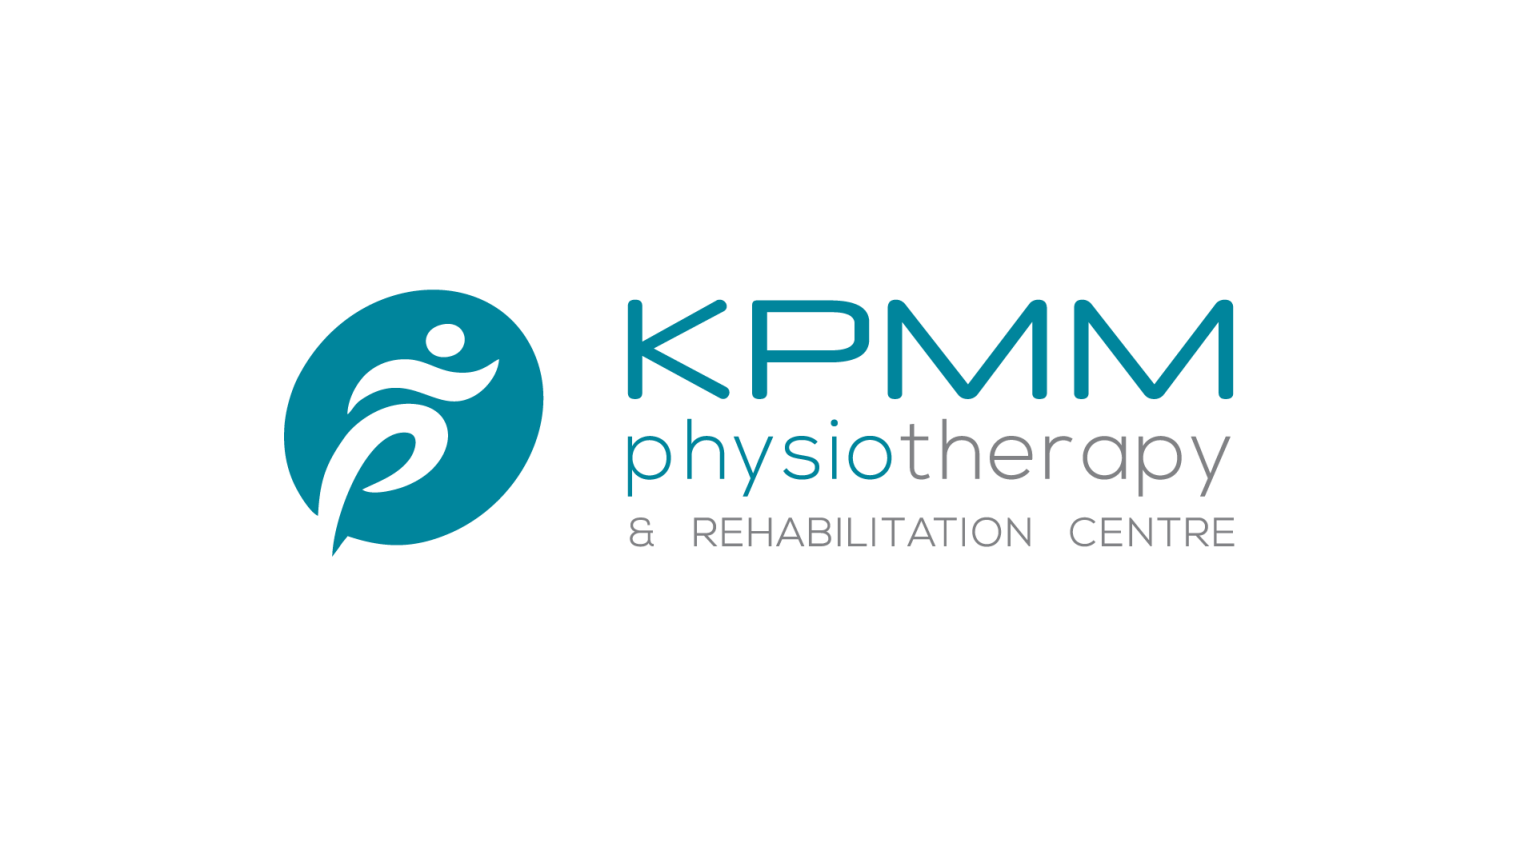 KPMM Physiotherapy and Rehabilitation Centre